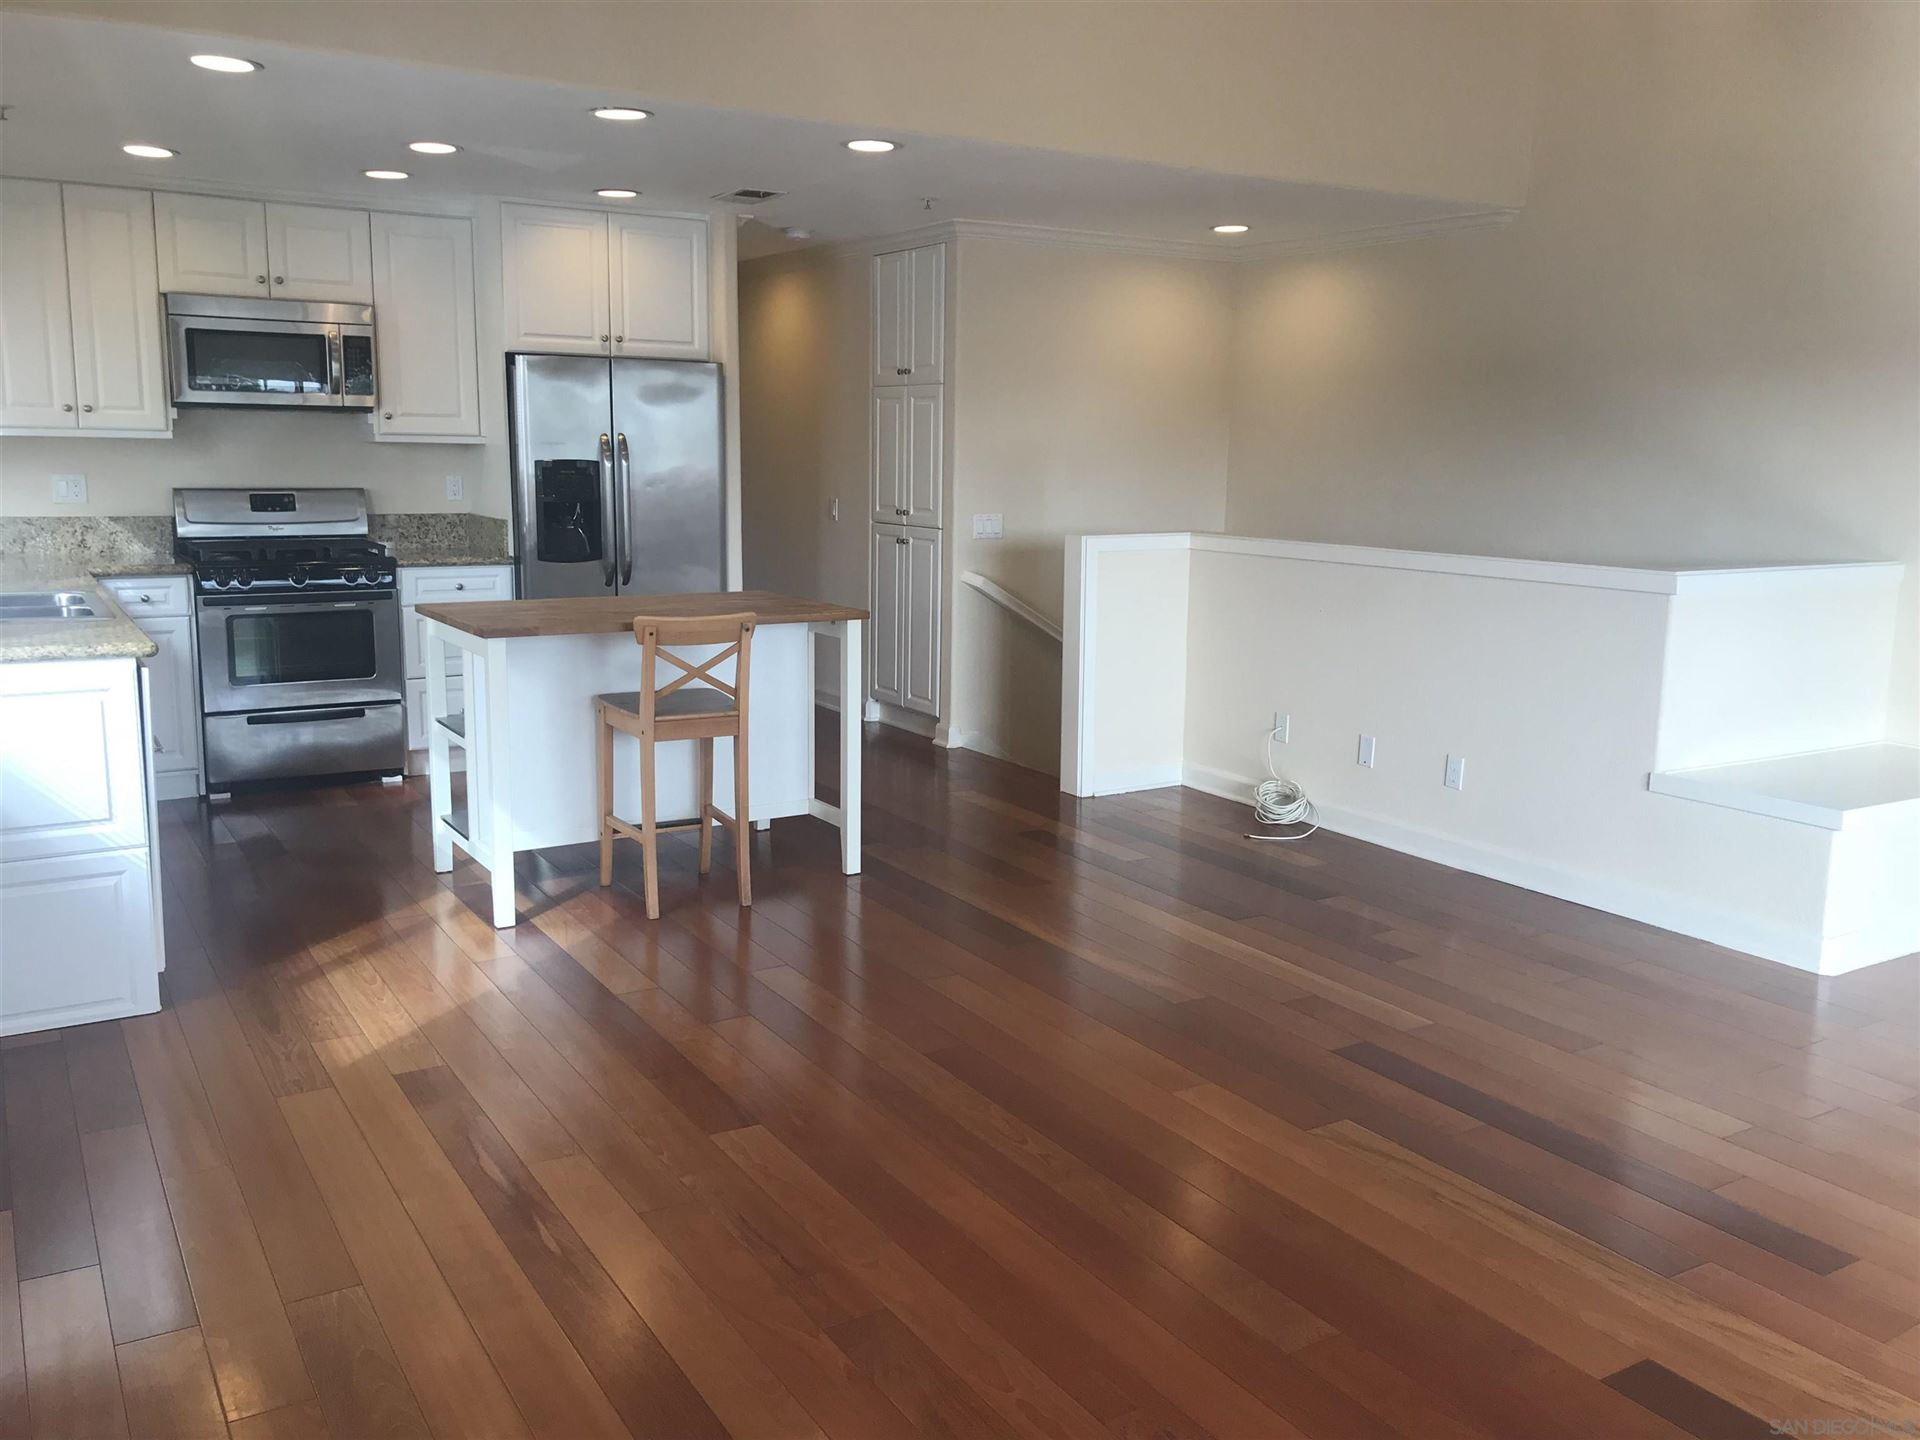 Photo of 700 Seacoast Dr, Imperial Beach, CA 91932 (MLS # 210026505)